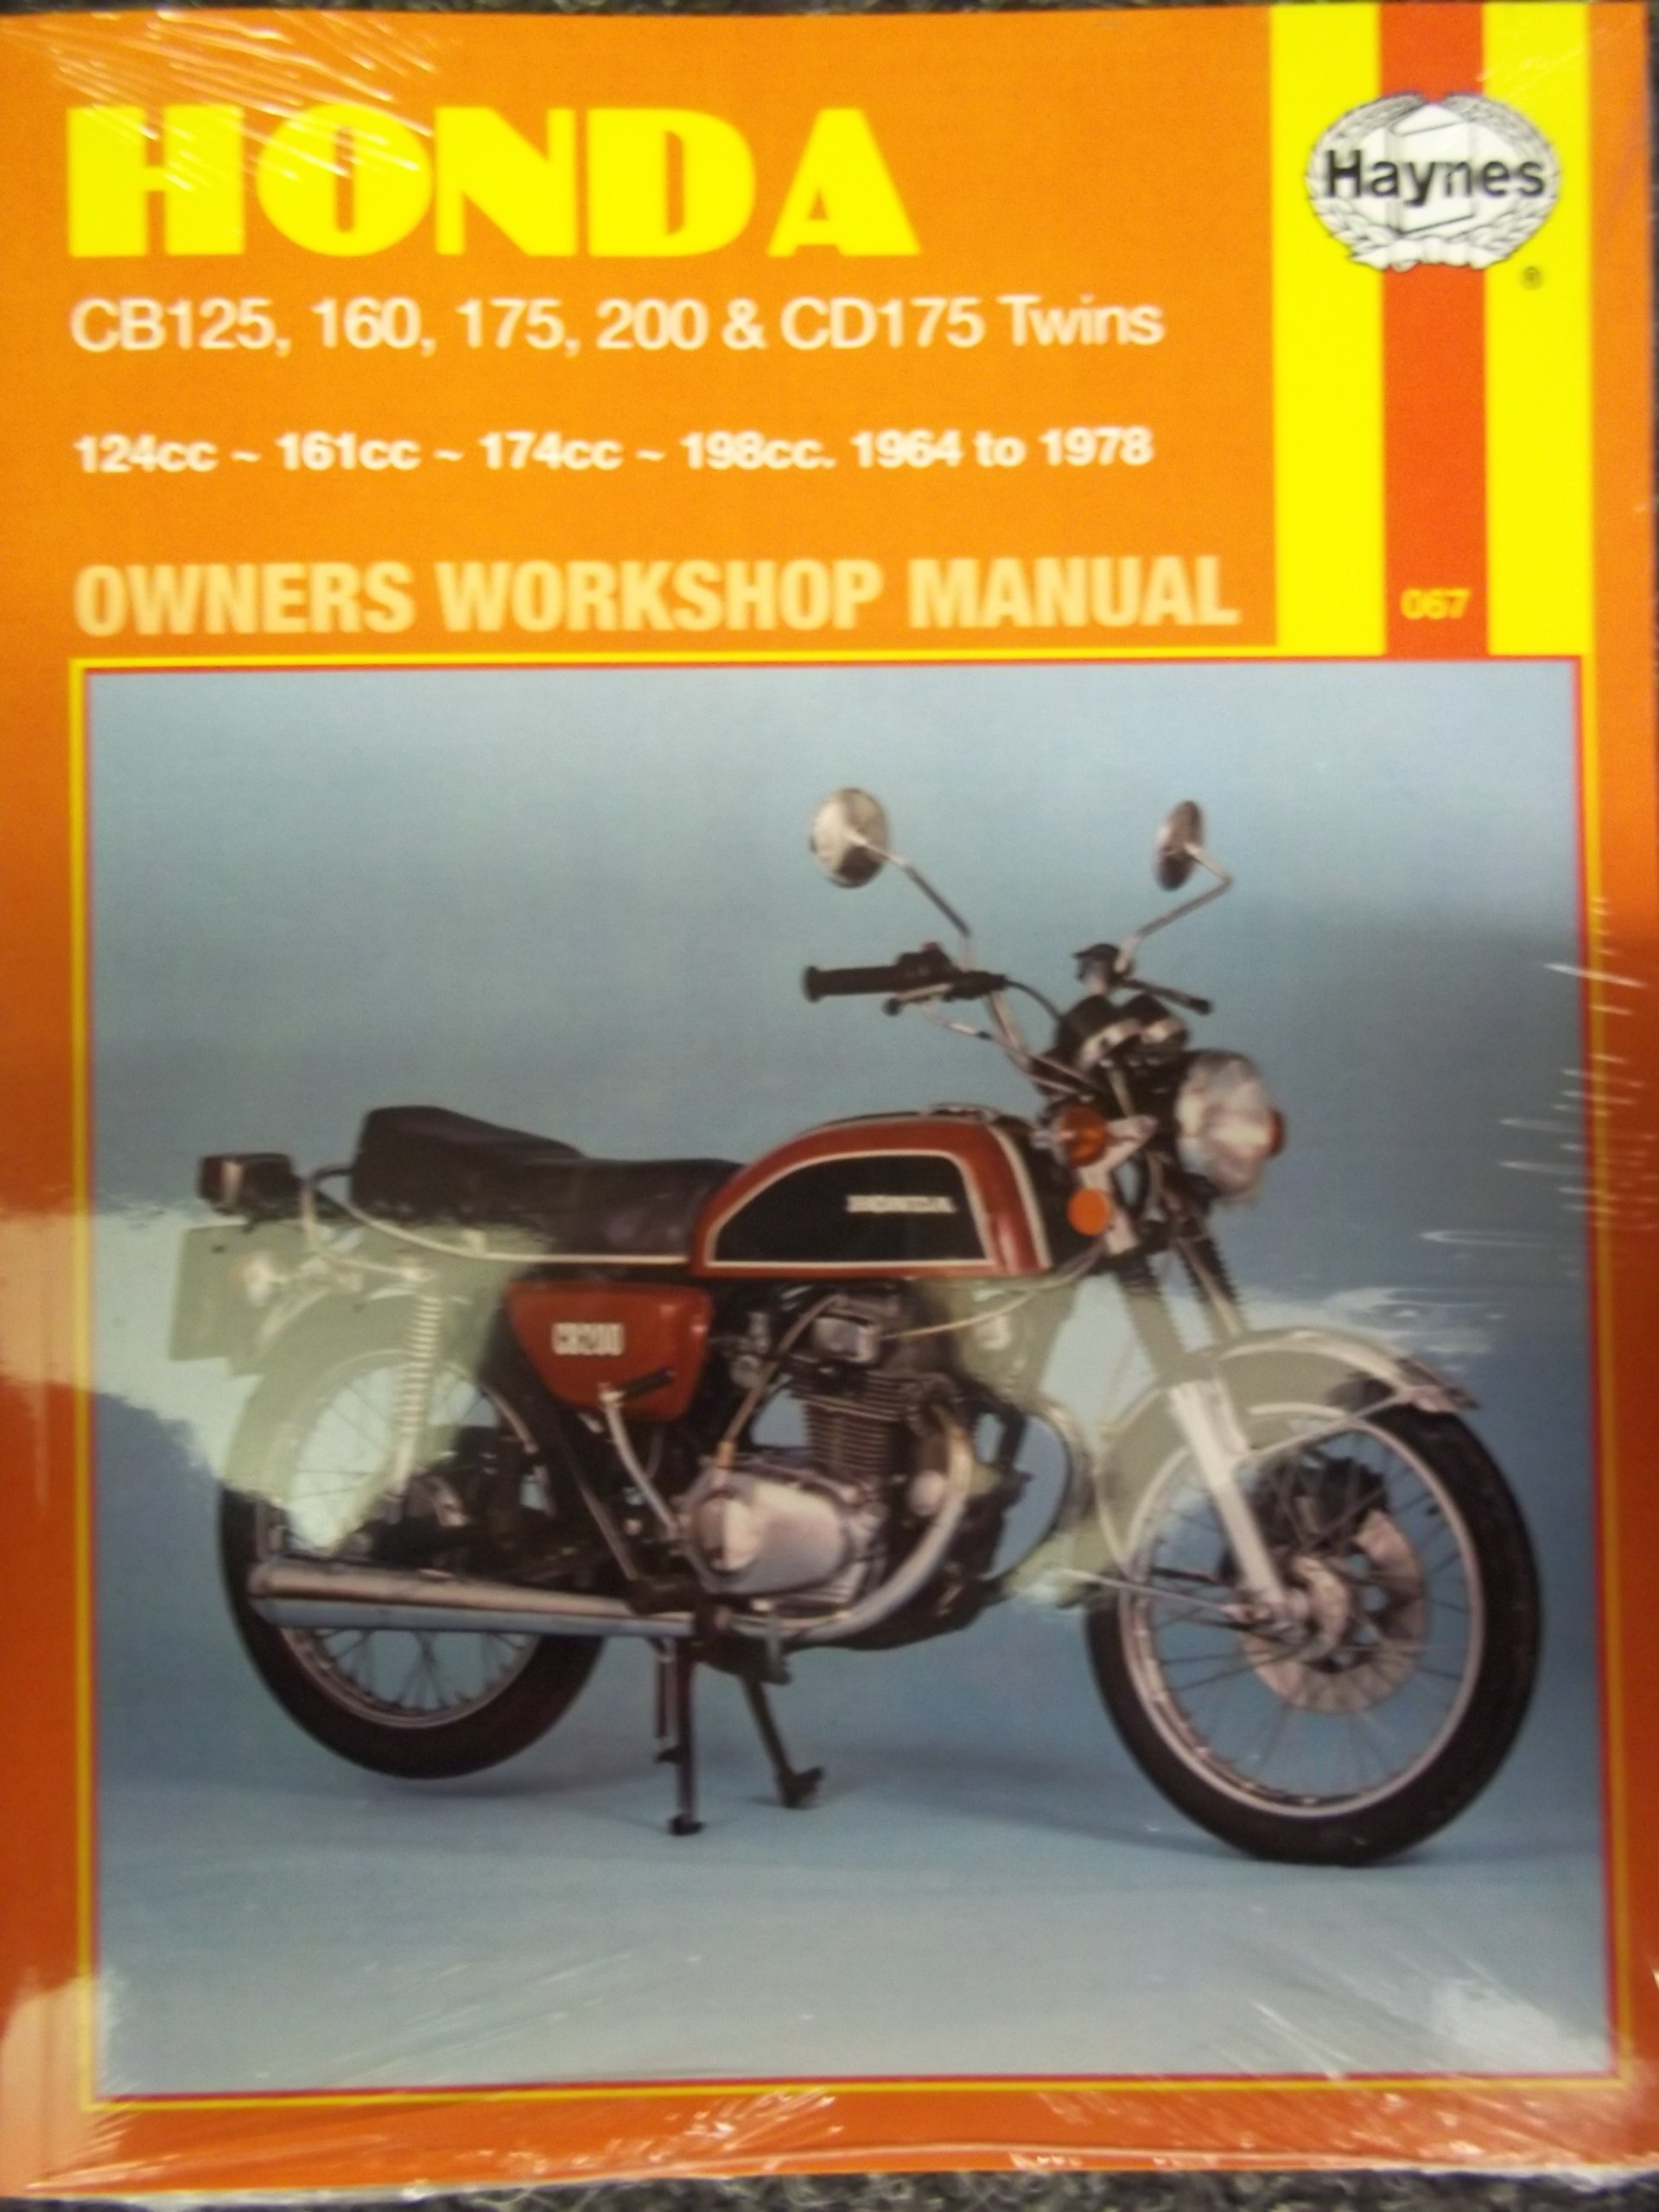 Buy honda cb125 160 175 200 twins motorcycle manuals book buy honda cb125 160 175 200 twins motorcycle manuals book online at low prices in india honda cb125 160 175 200 twins motorcycle manuals fandeluxe Image collections